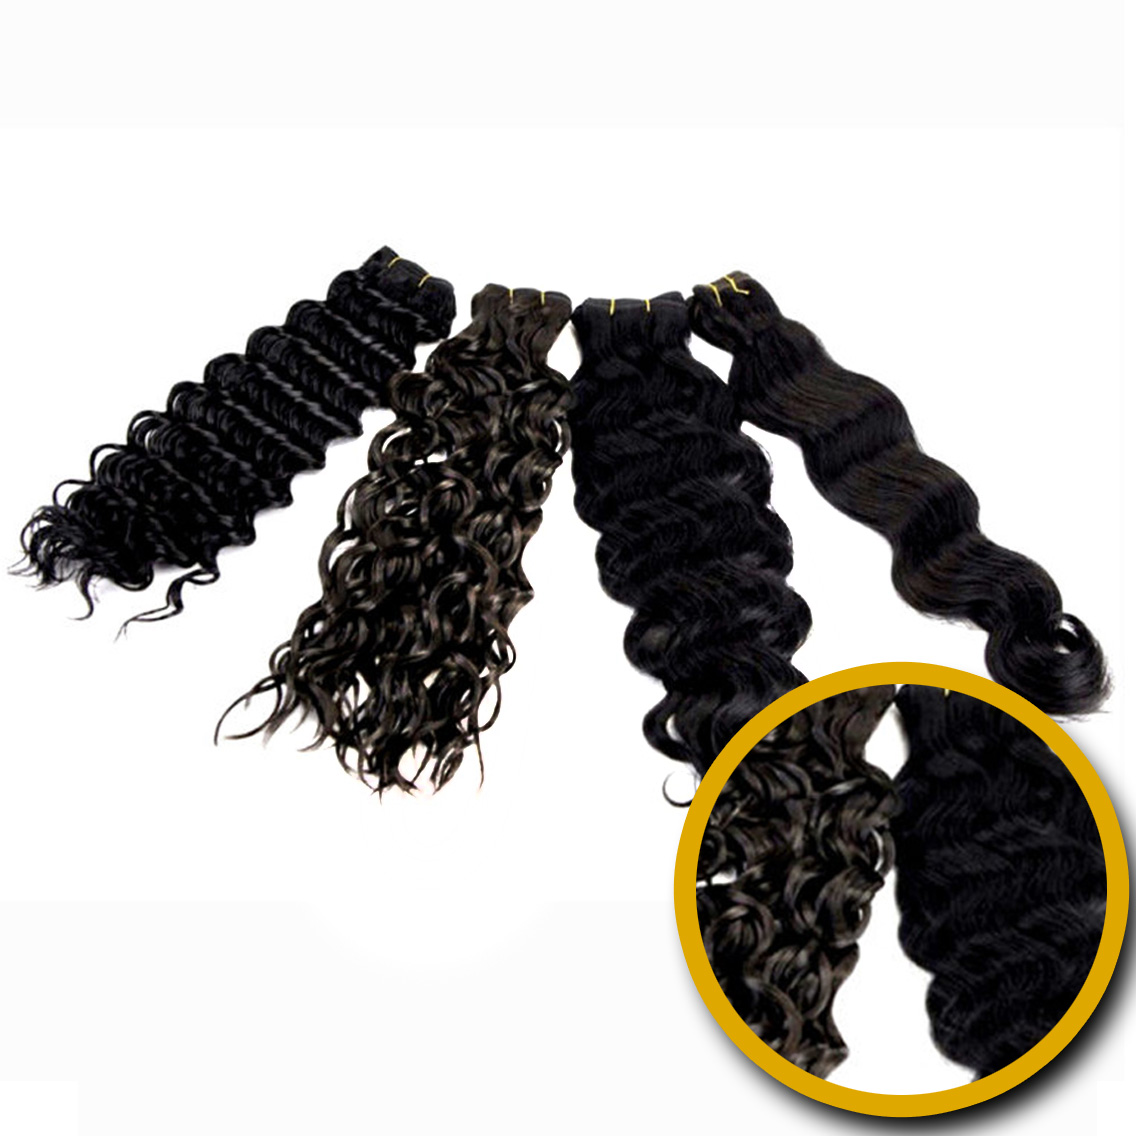 Hair Bundle Deals Leet Hair Extension